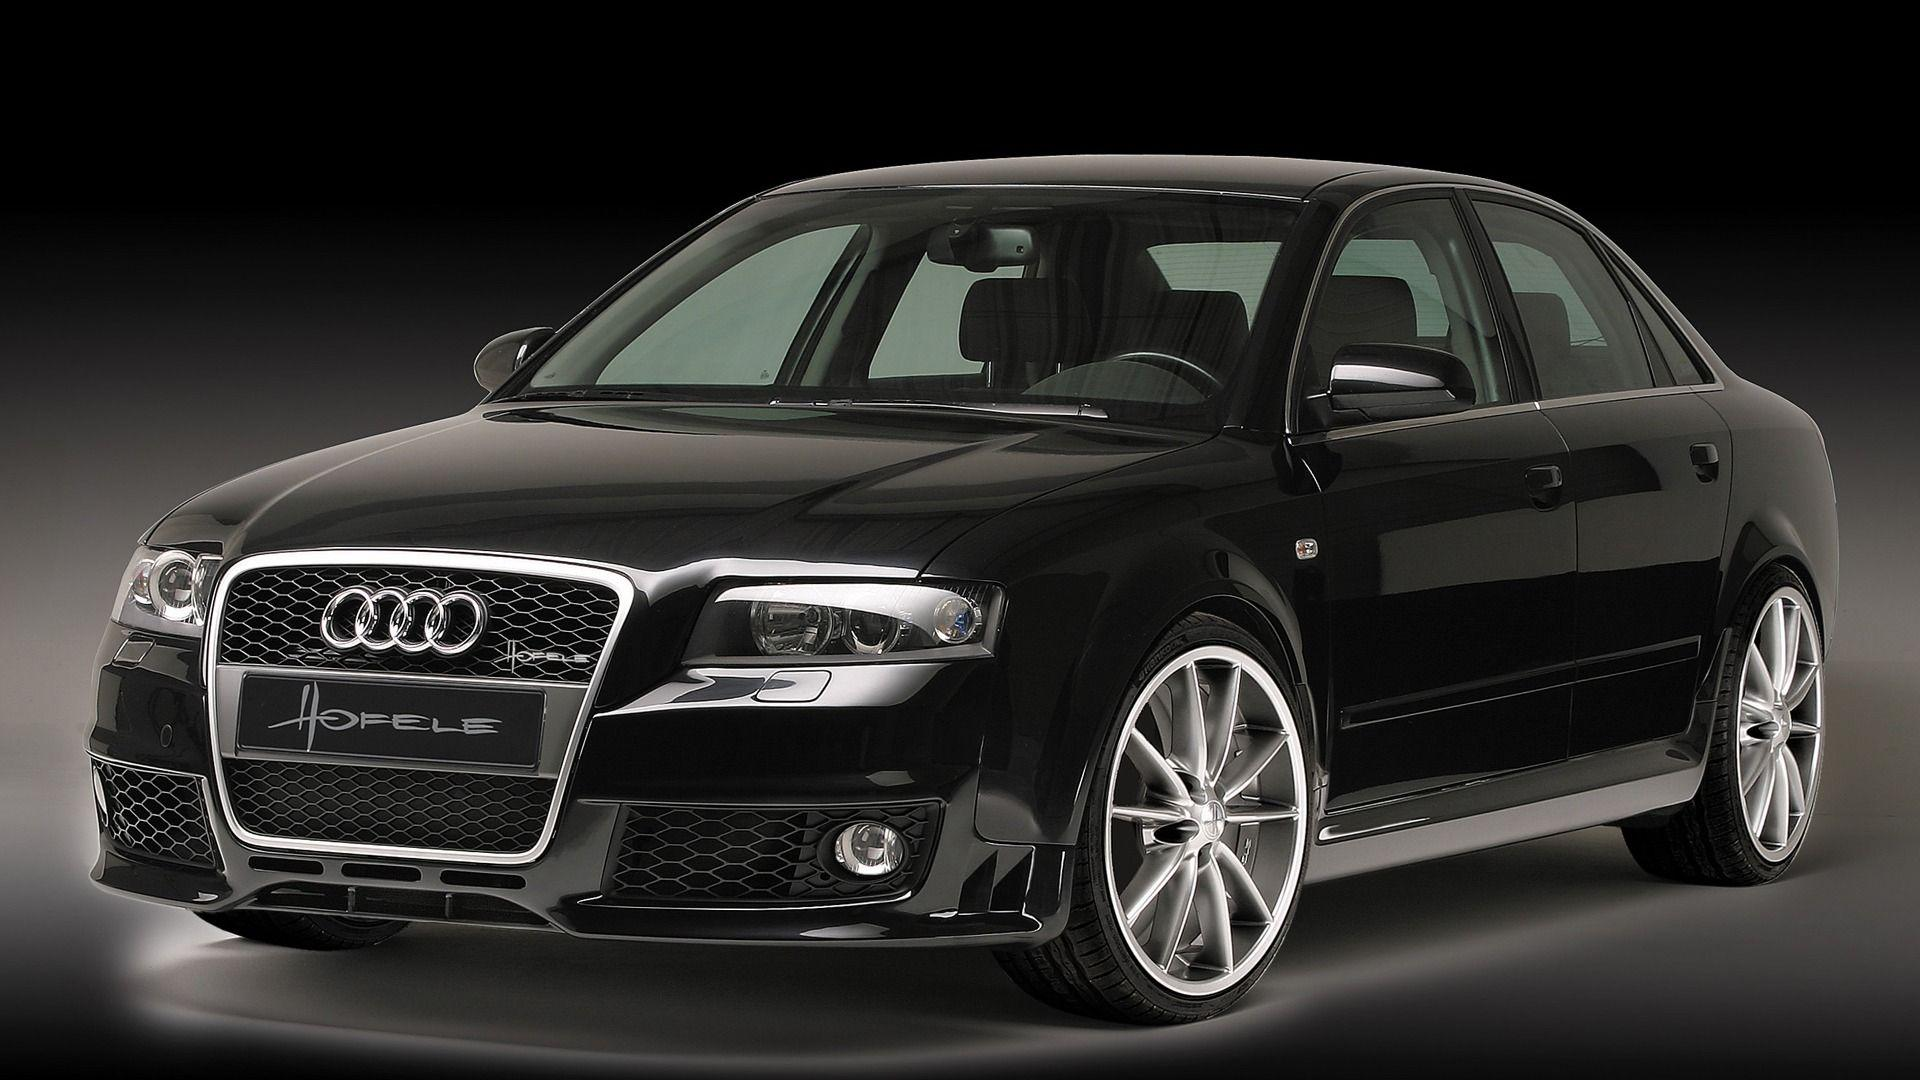 Audi A4 Wallpapers High Resolution : Cars Wallpapers